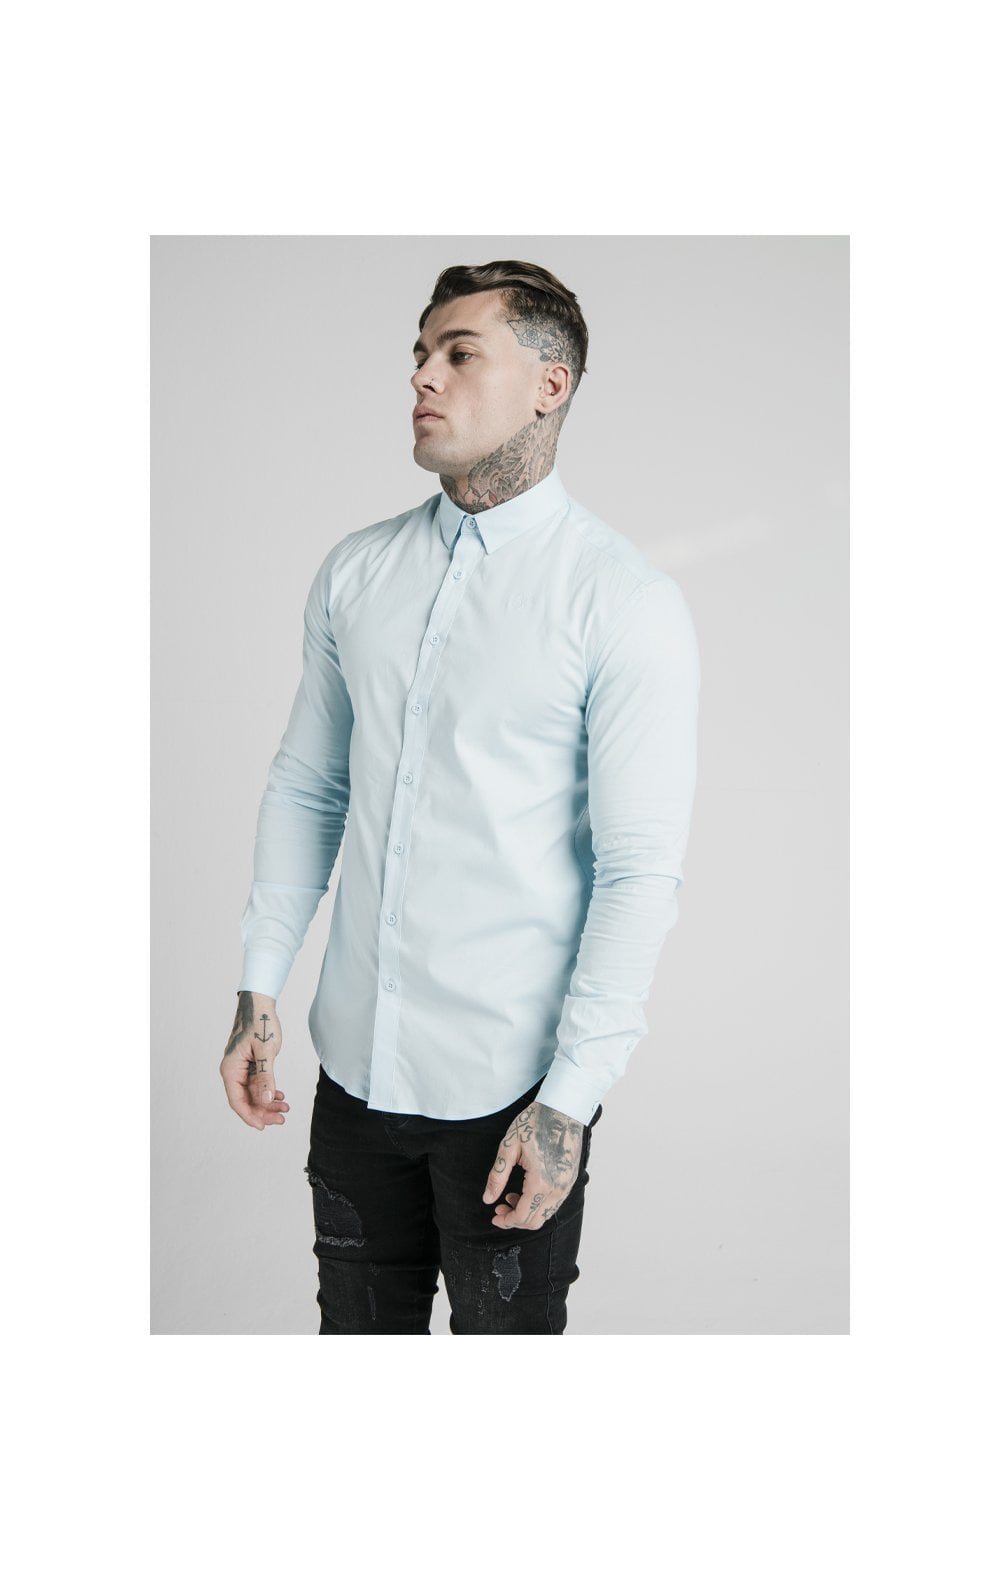 Load image into Gallery viewer, SikSilk L/S Cotton Stretch Shirt - Light Blue (1)